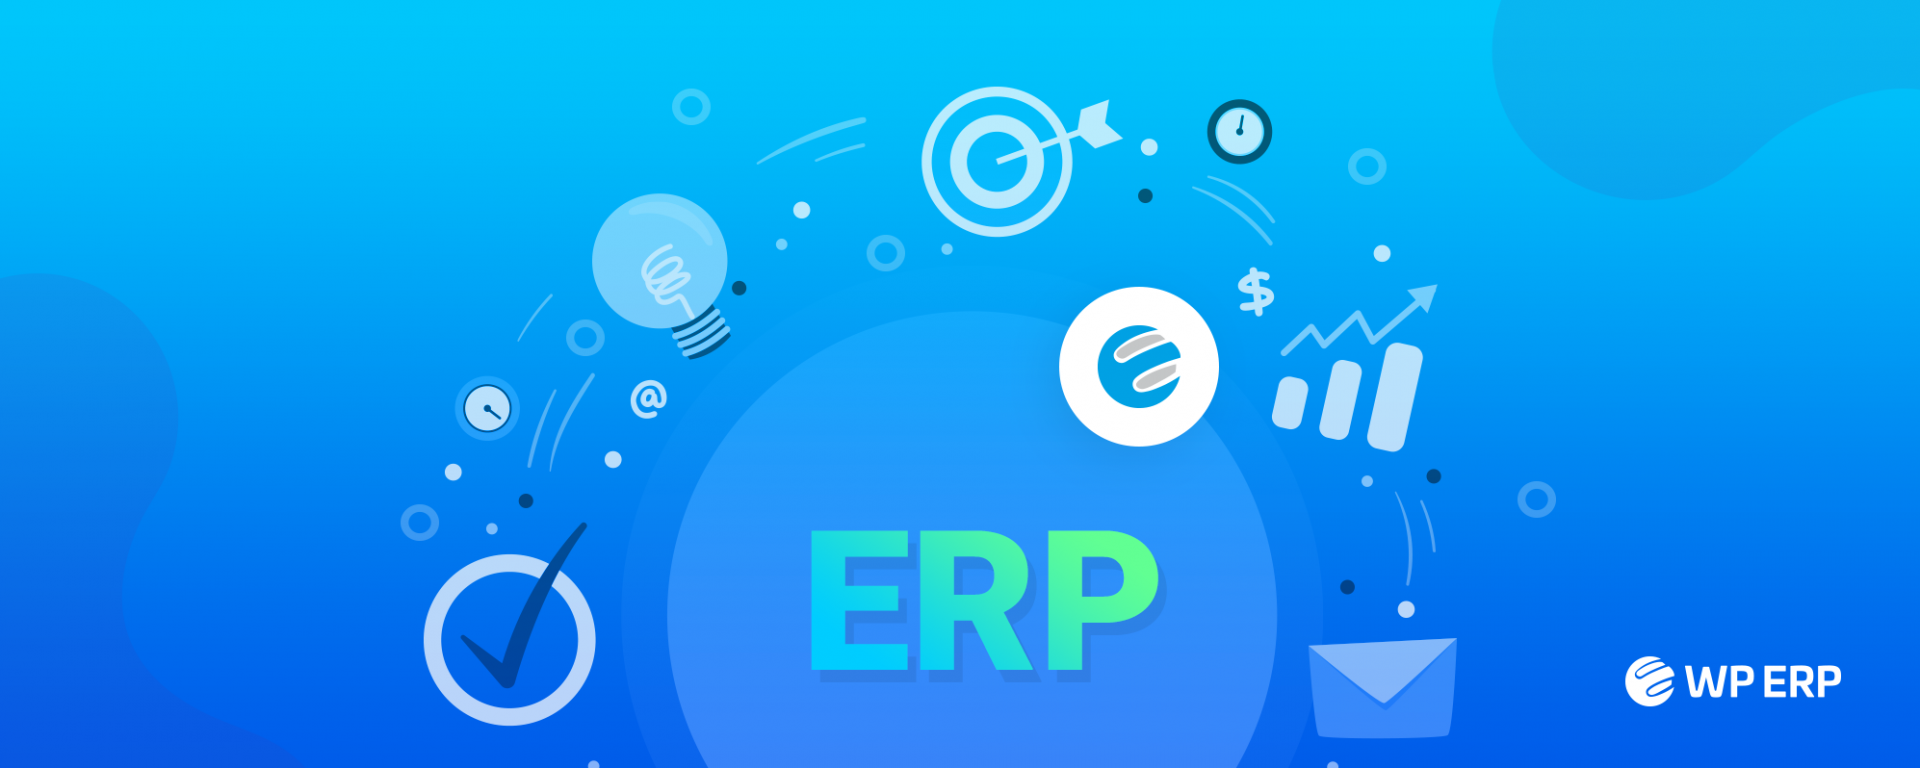 Why implement an ERP system